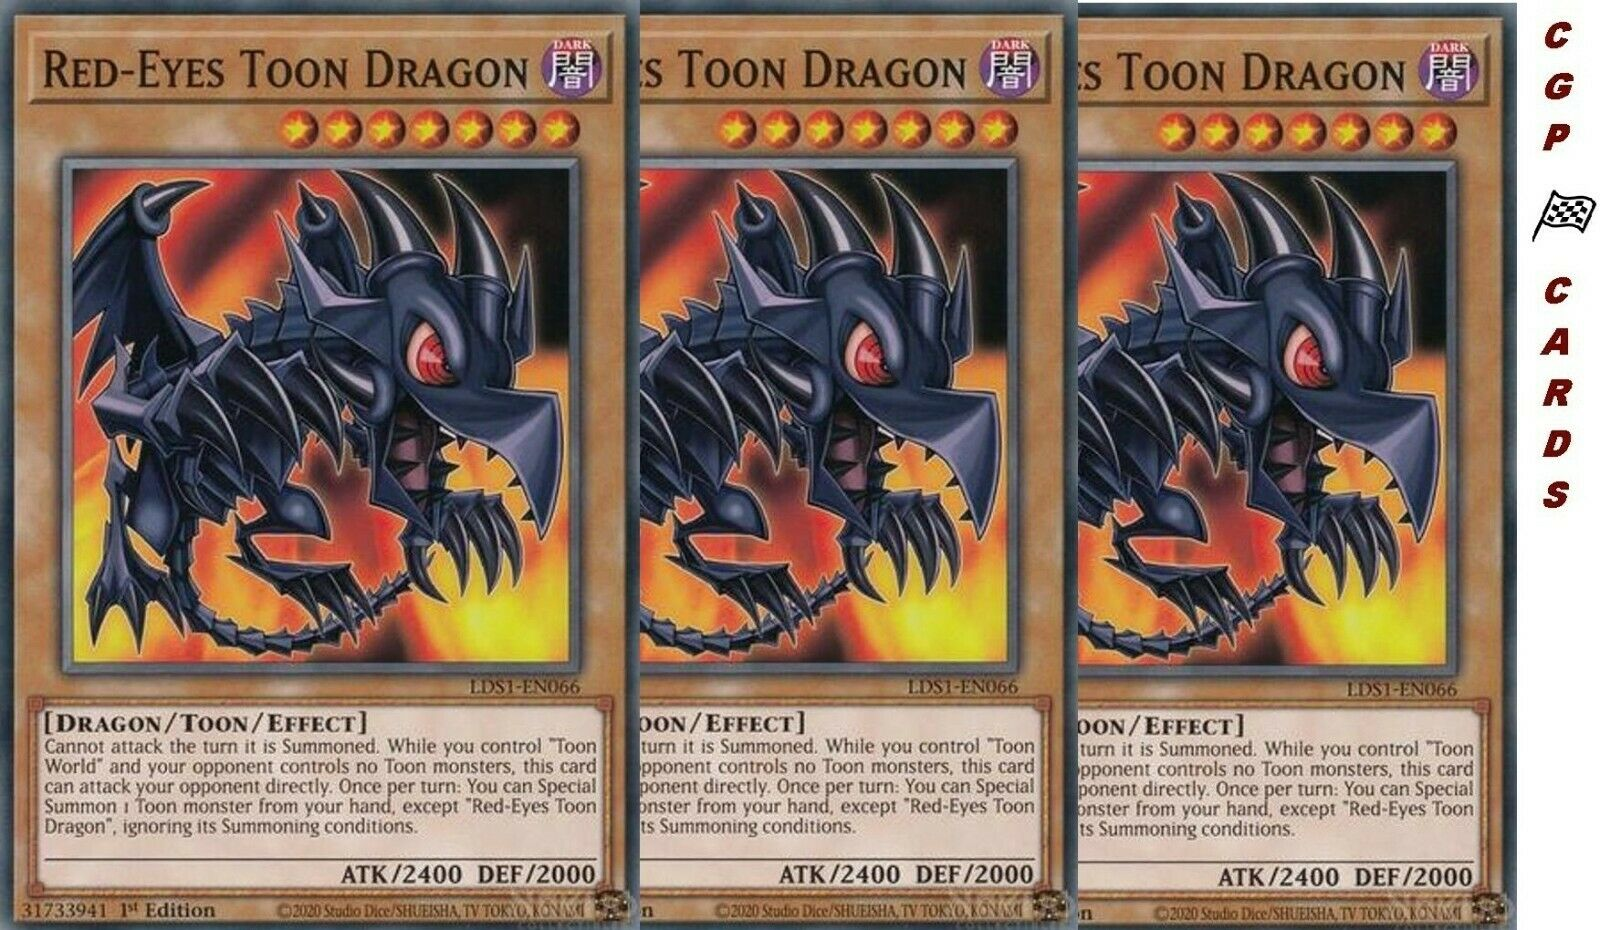 YGO-1x-Near Mint-Red-Eyes Toon Dragon Common LDS1-EN066 1st Edition-Legend